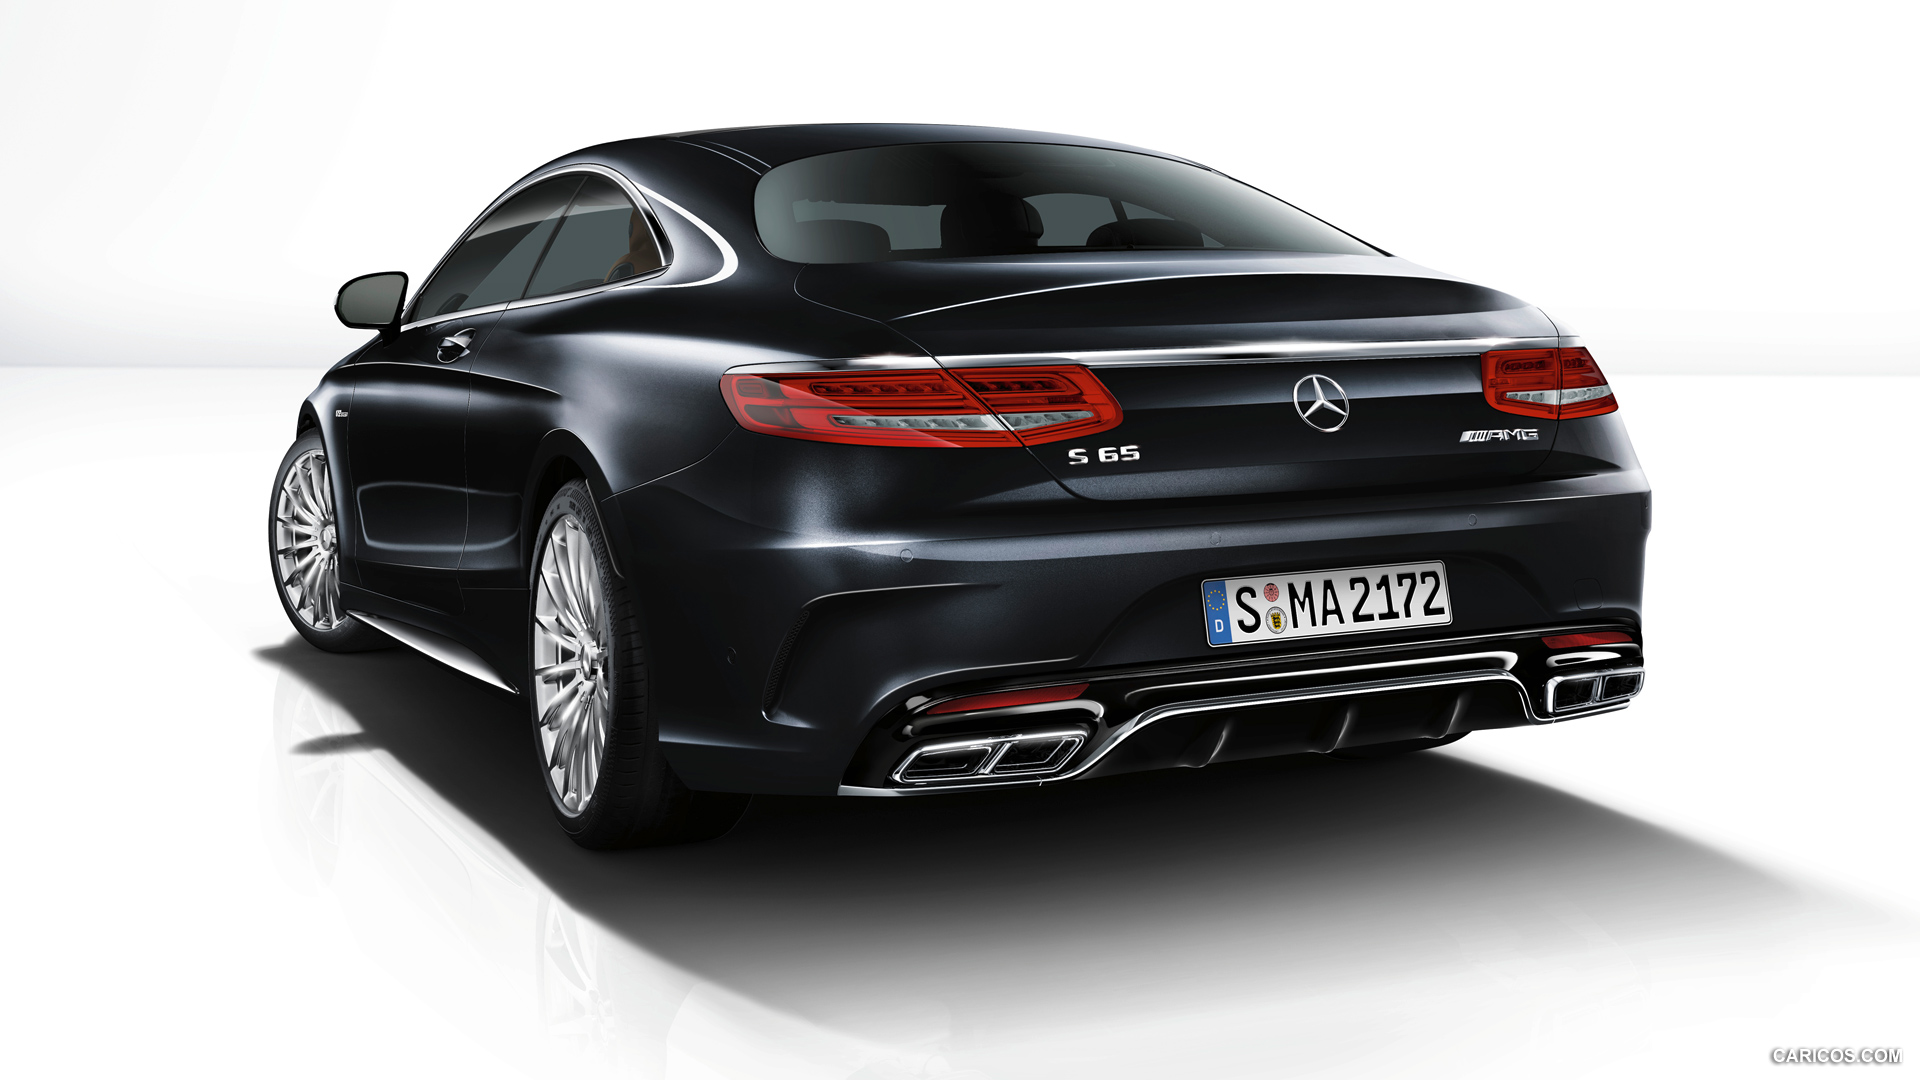 Mercedes-Benz S65 AMG Coupe photo 136335